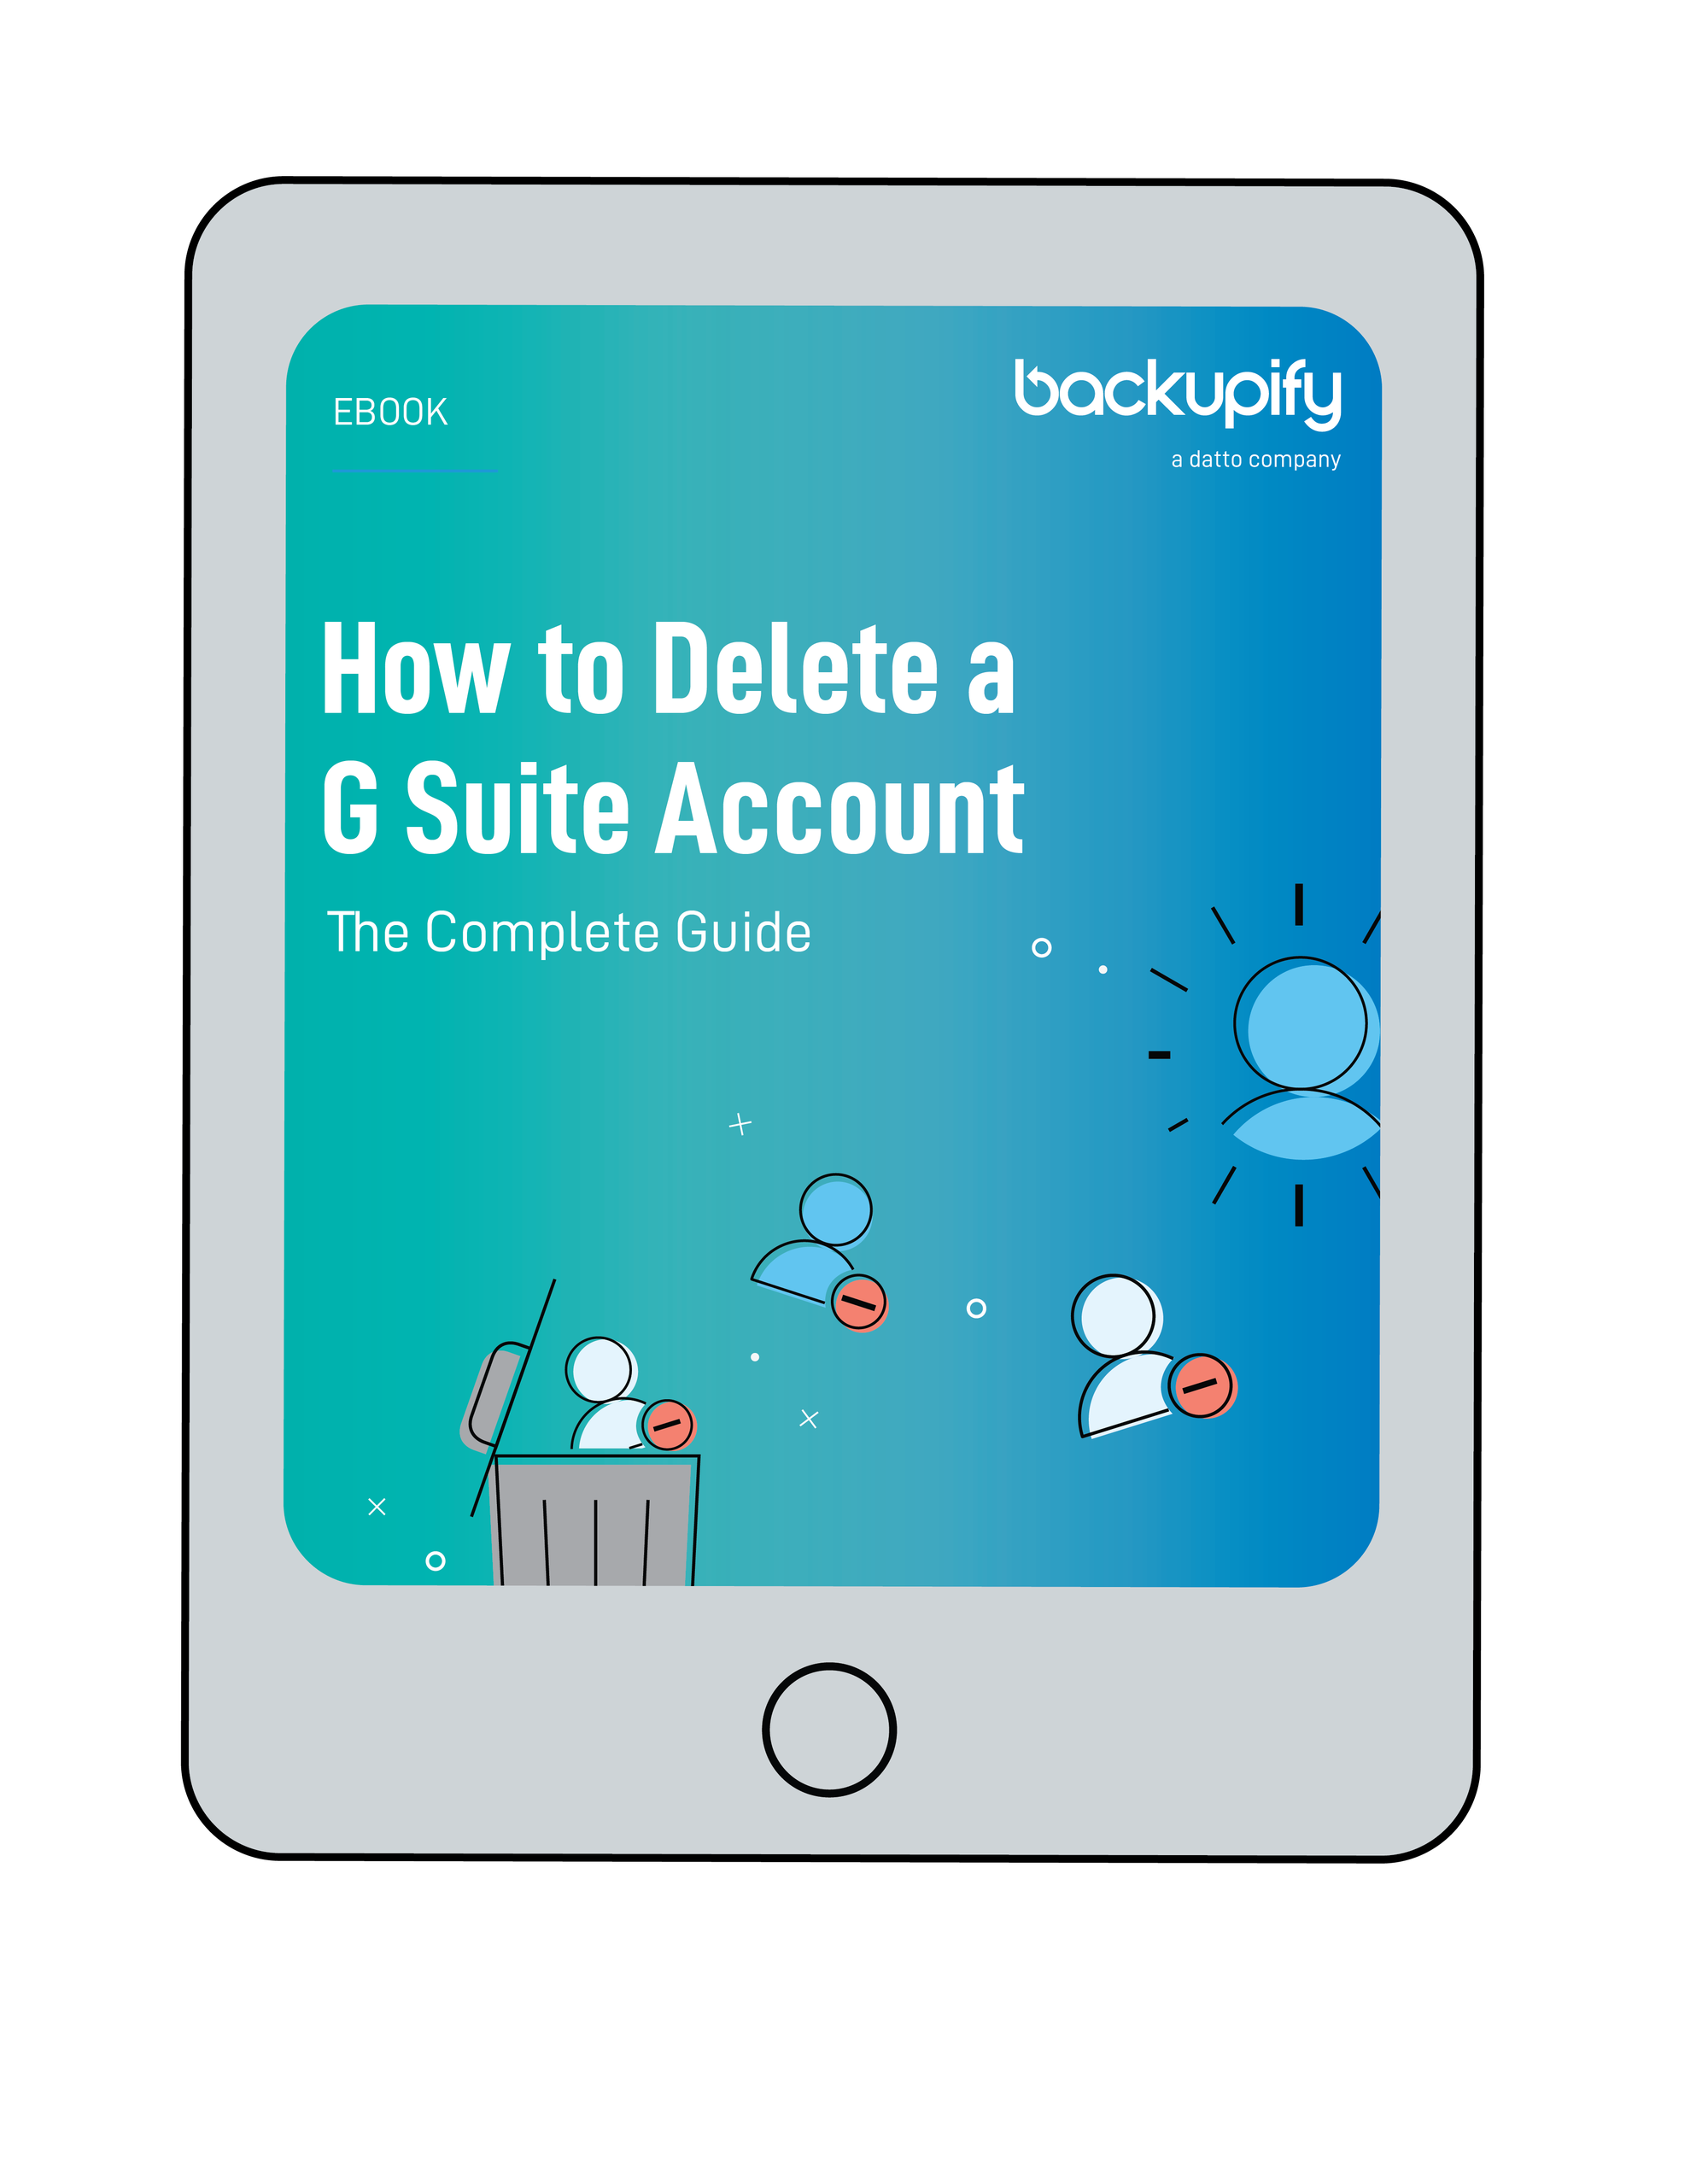 How to Delete a G Suite Account